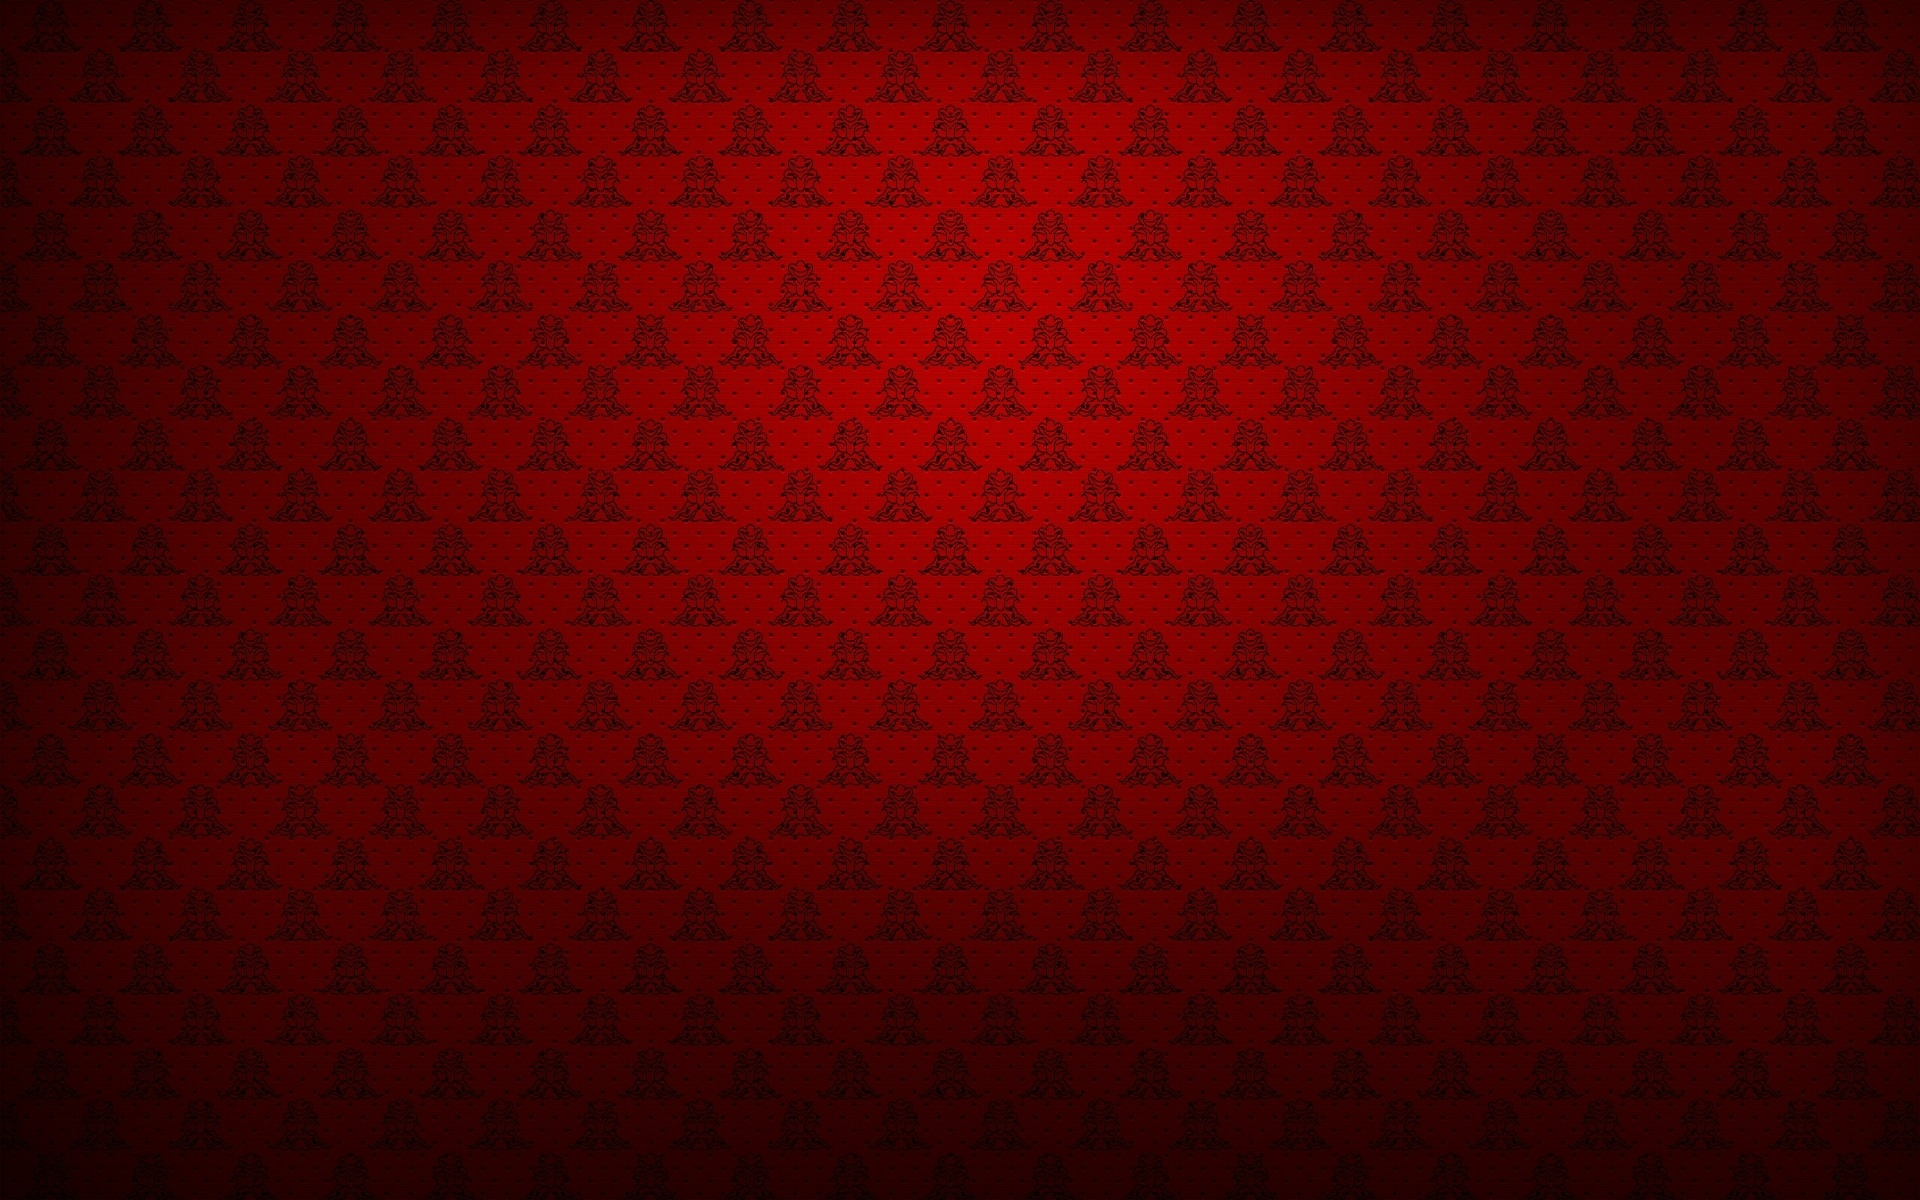 Best-new-background-patterns-Red-Patterns-1920-Red-Patterns-Background-Imageif-thr-wallpaper-wp3403190